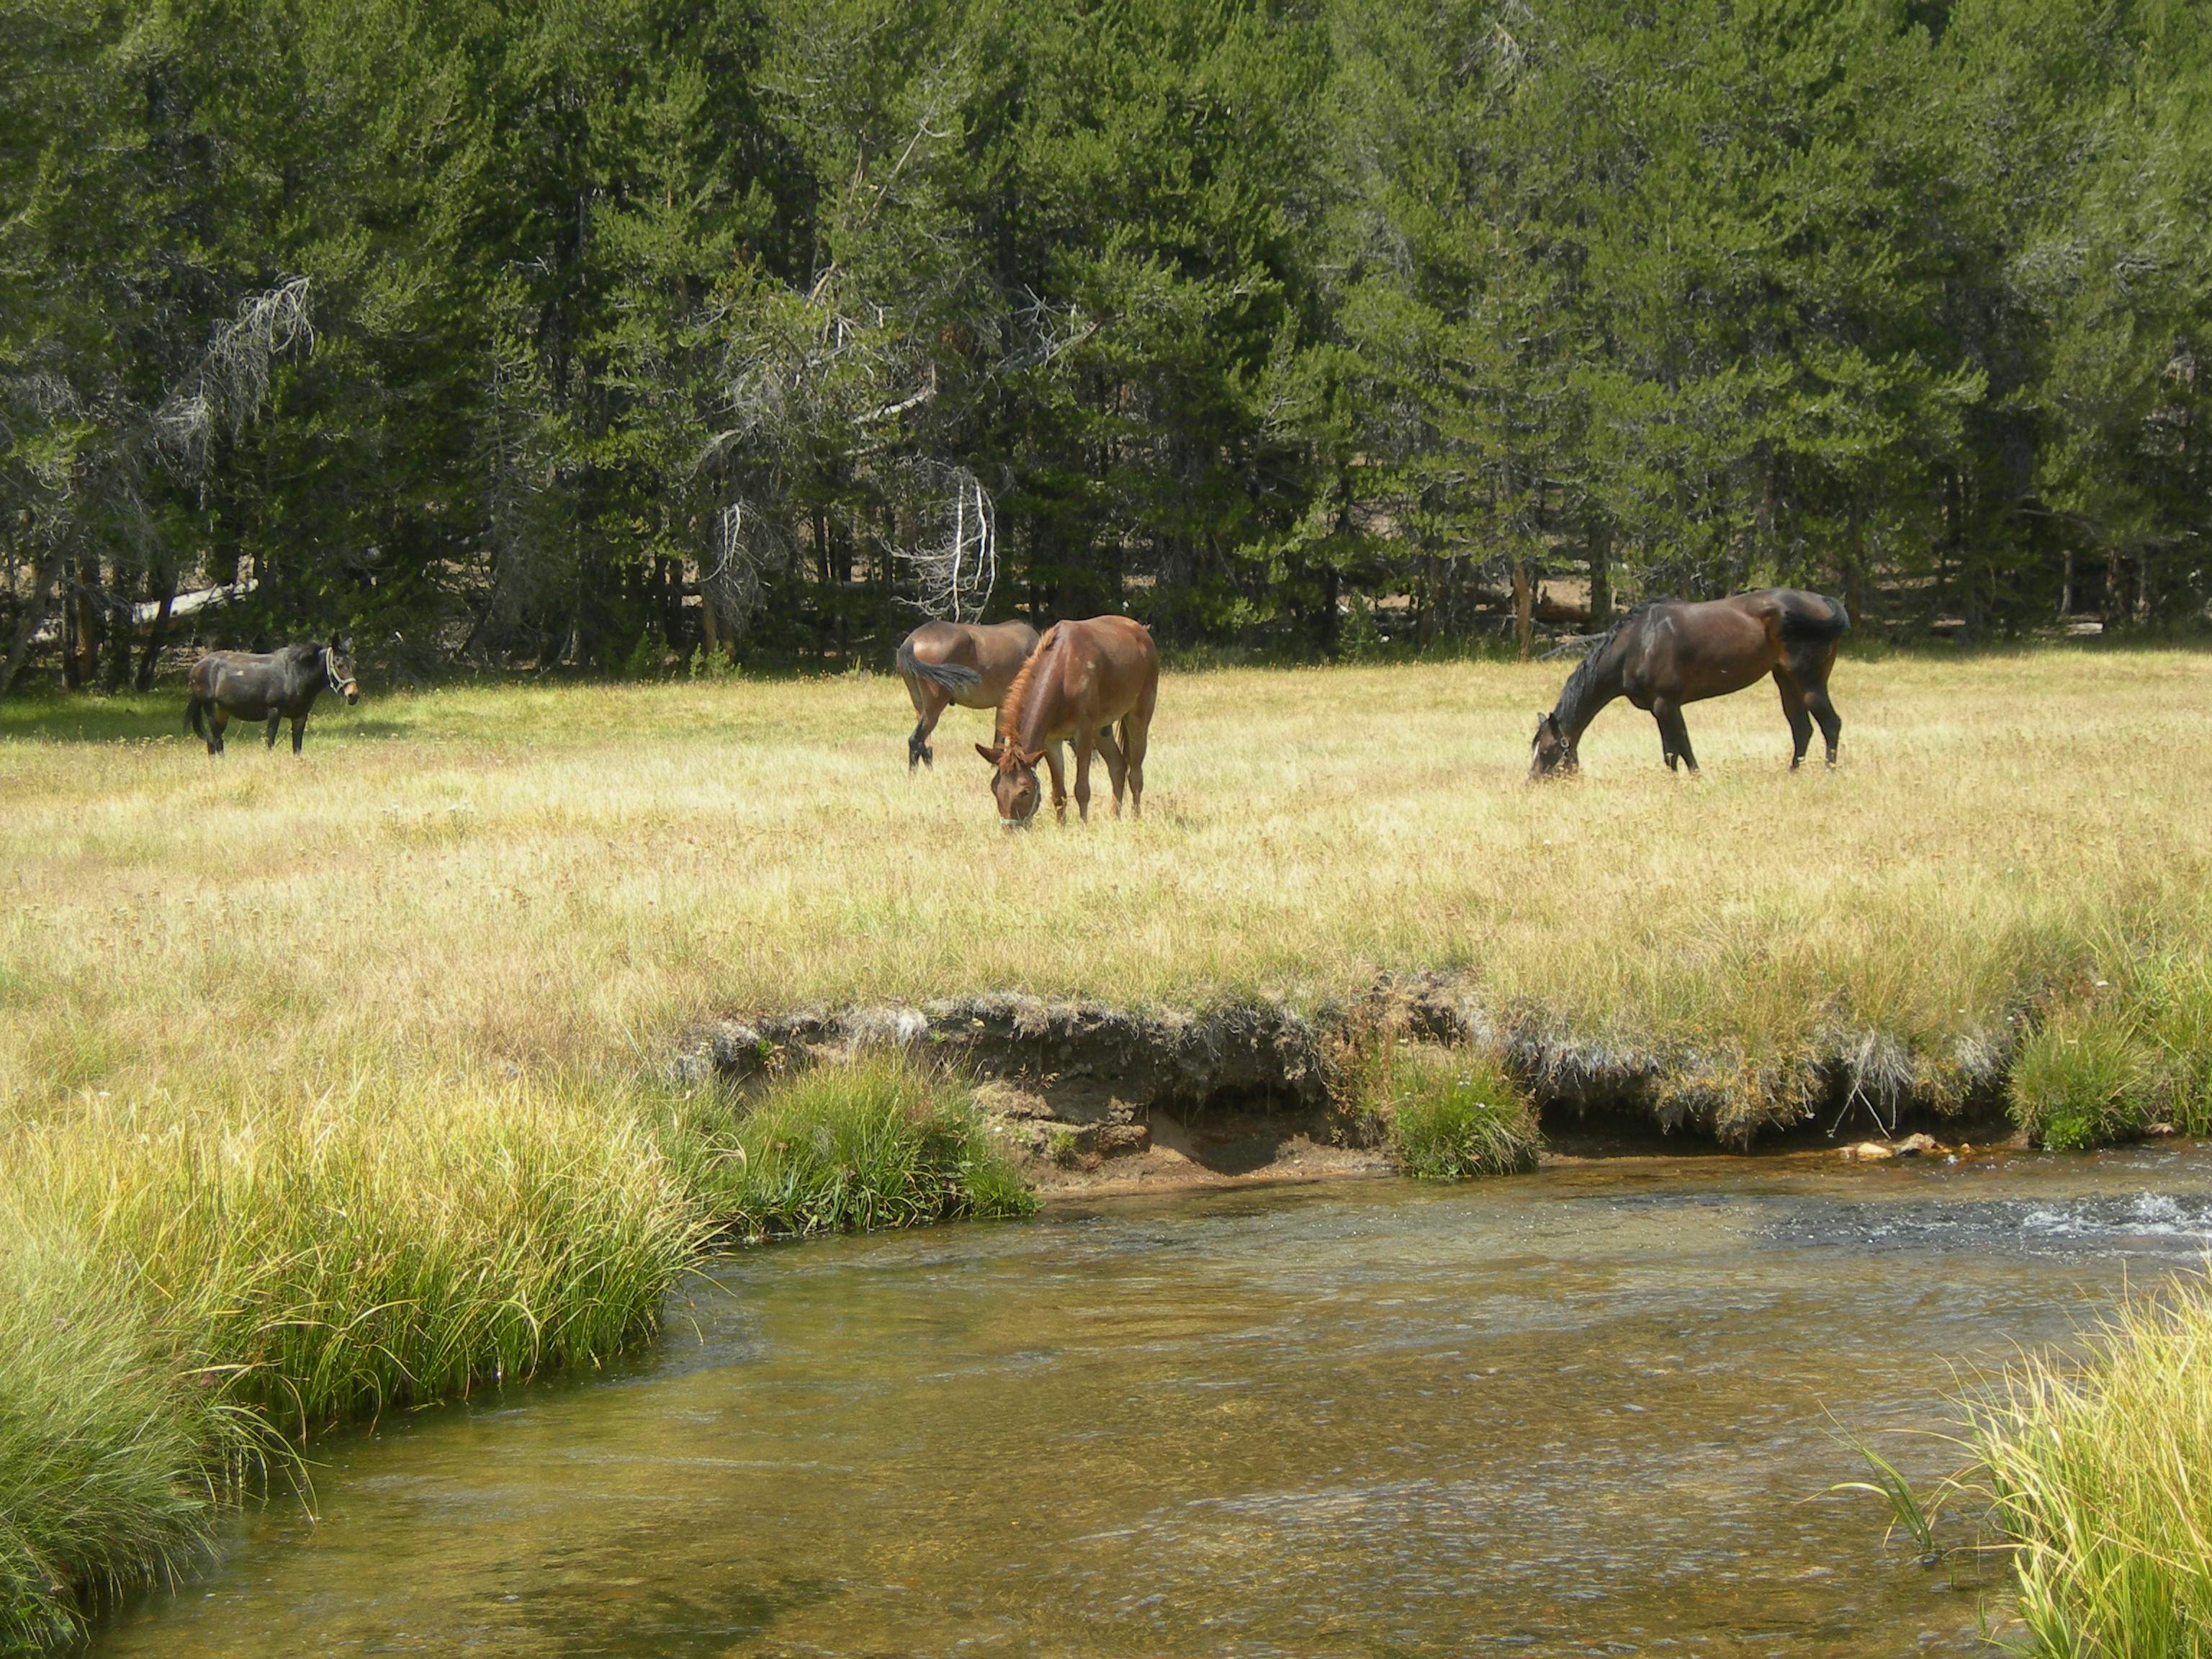 mules in a meadow by water